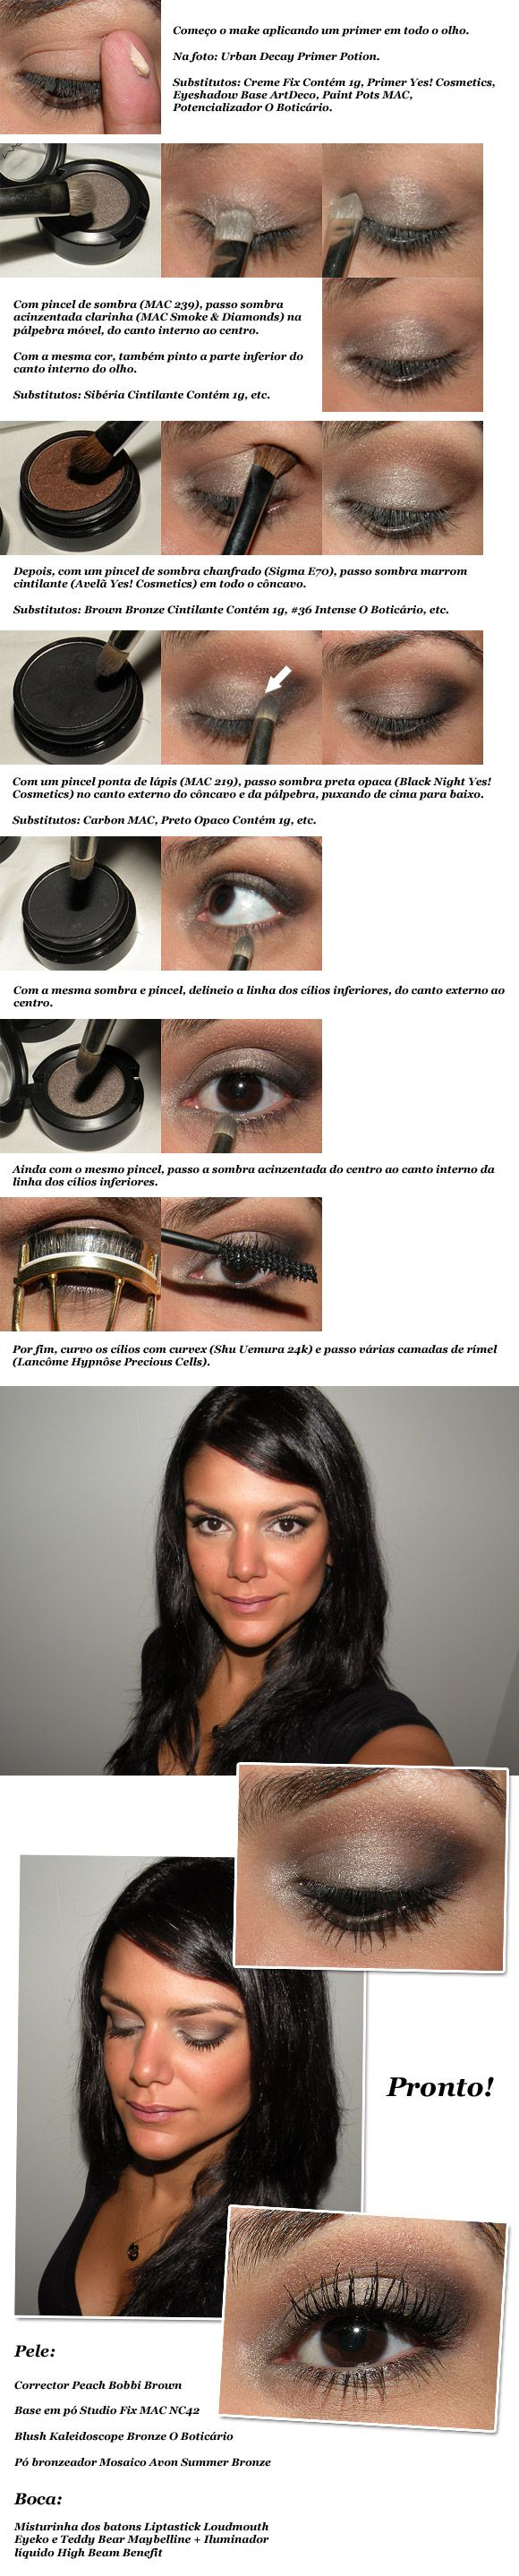 Neutral make-up tutorial. I can't go with out some form of liner. But it's pretty